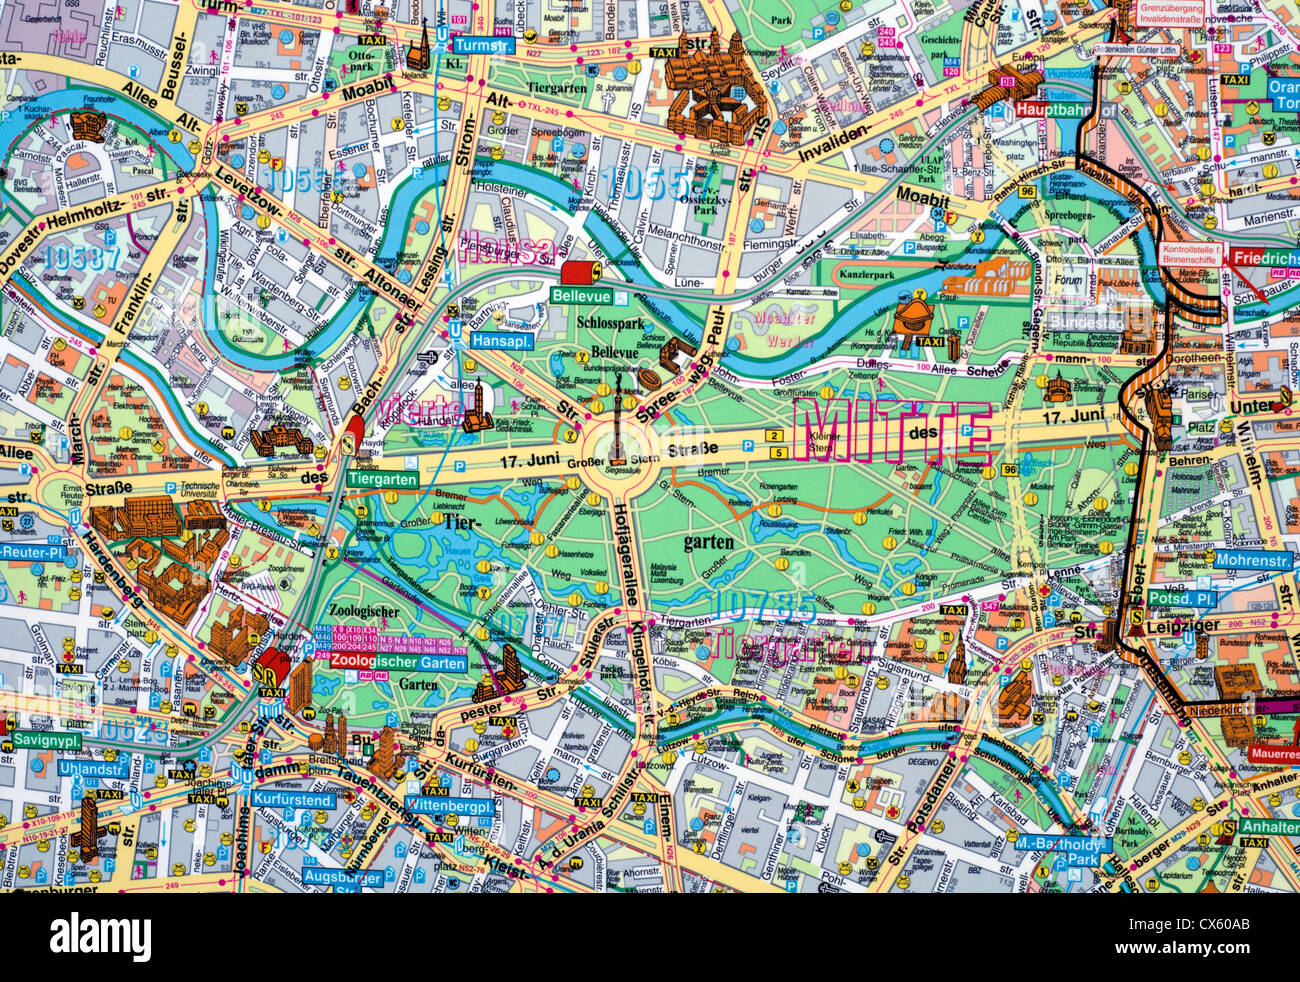 Map Of Berlin Germany Close up of a map of Berlin city centre, Germany Stock Photo